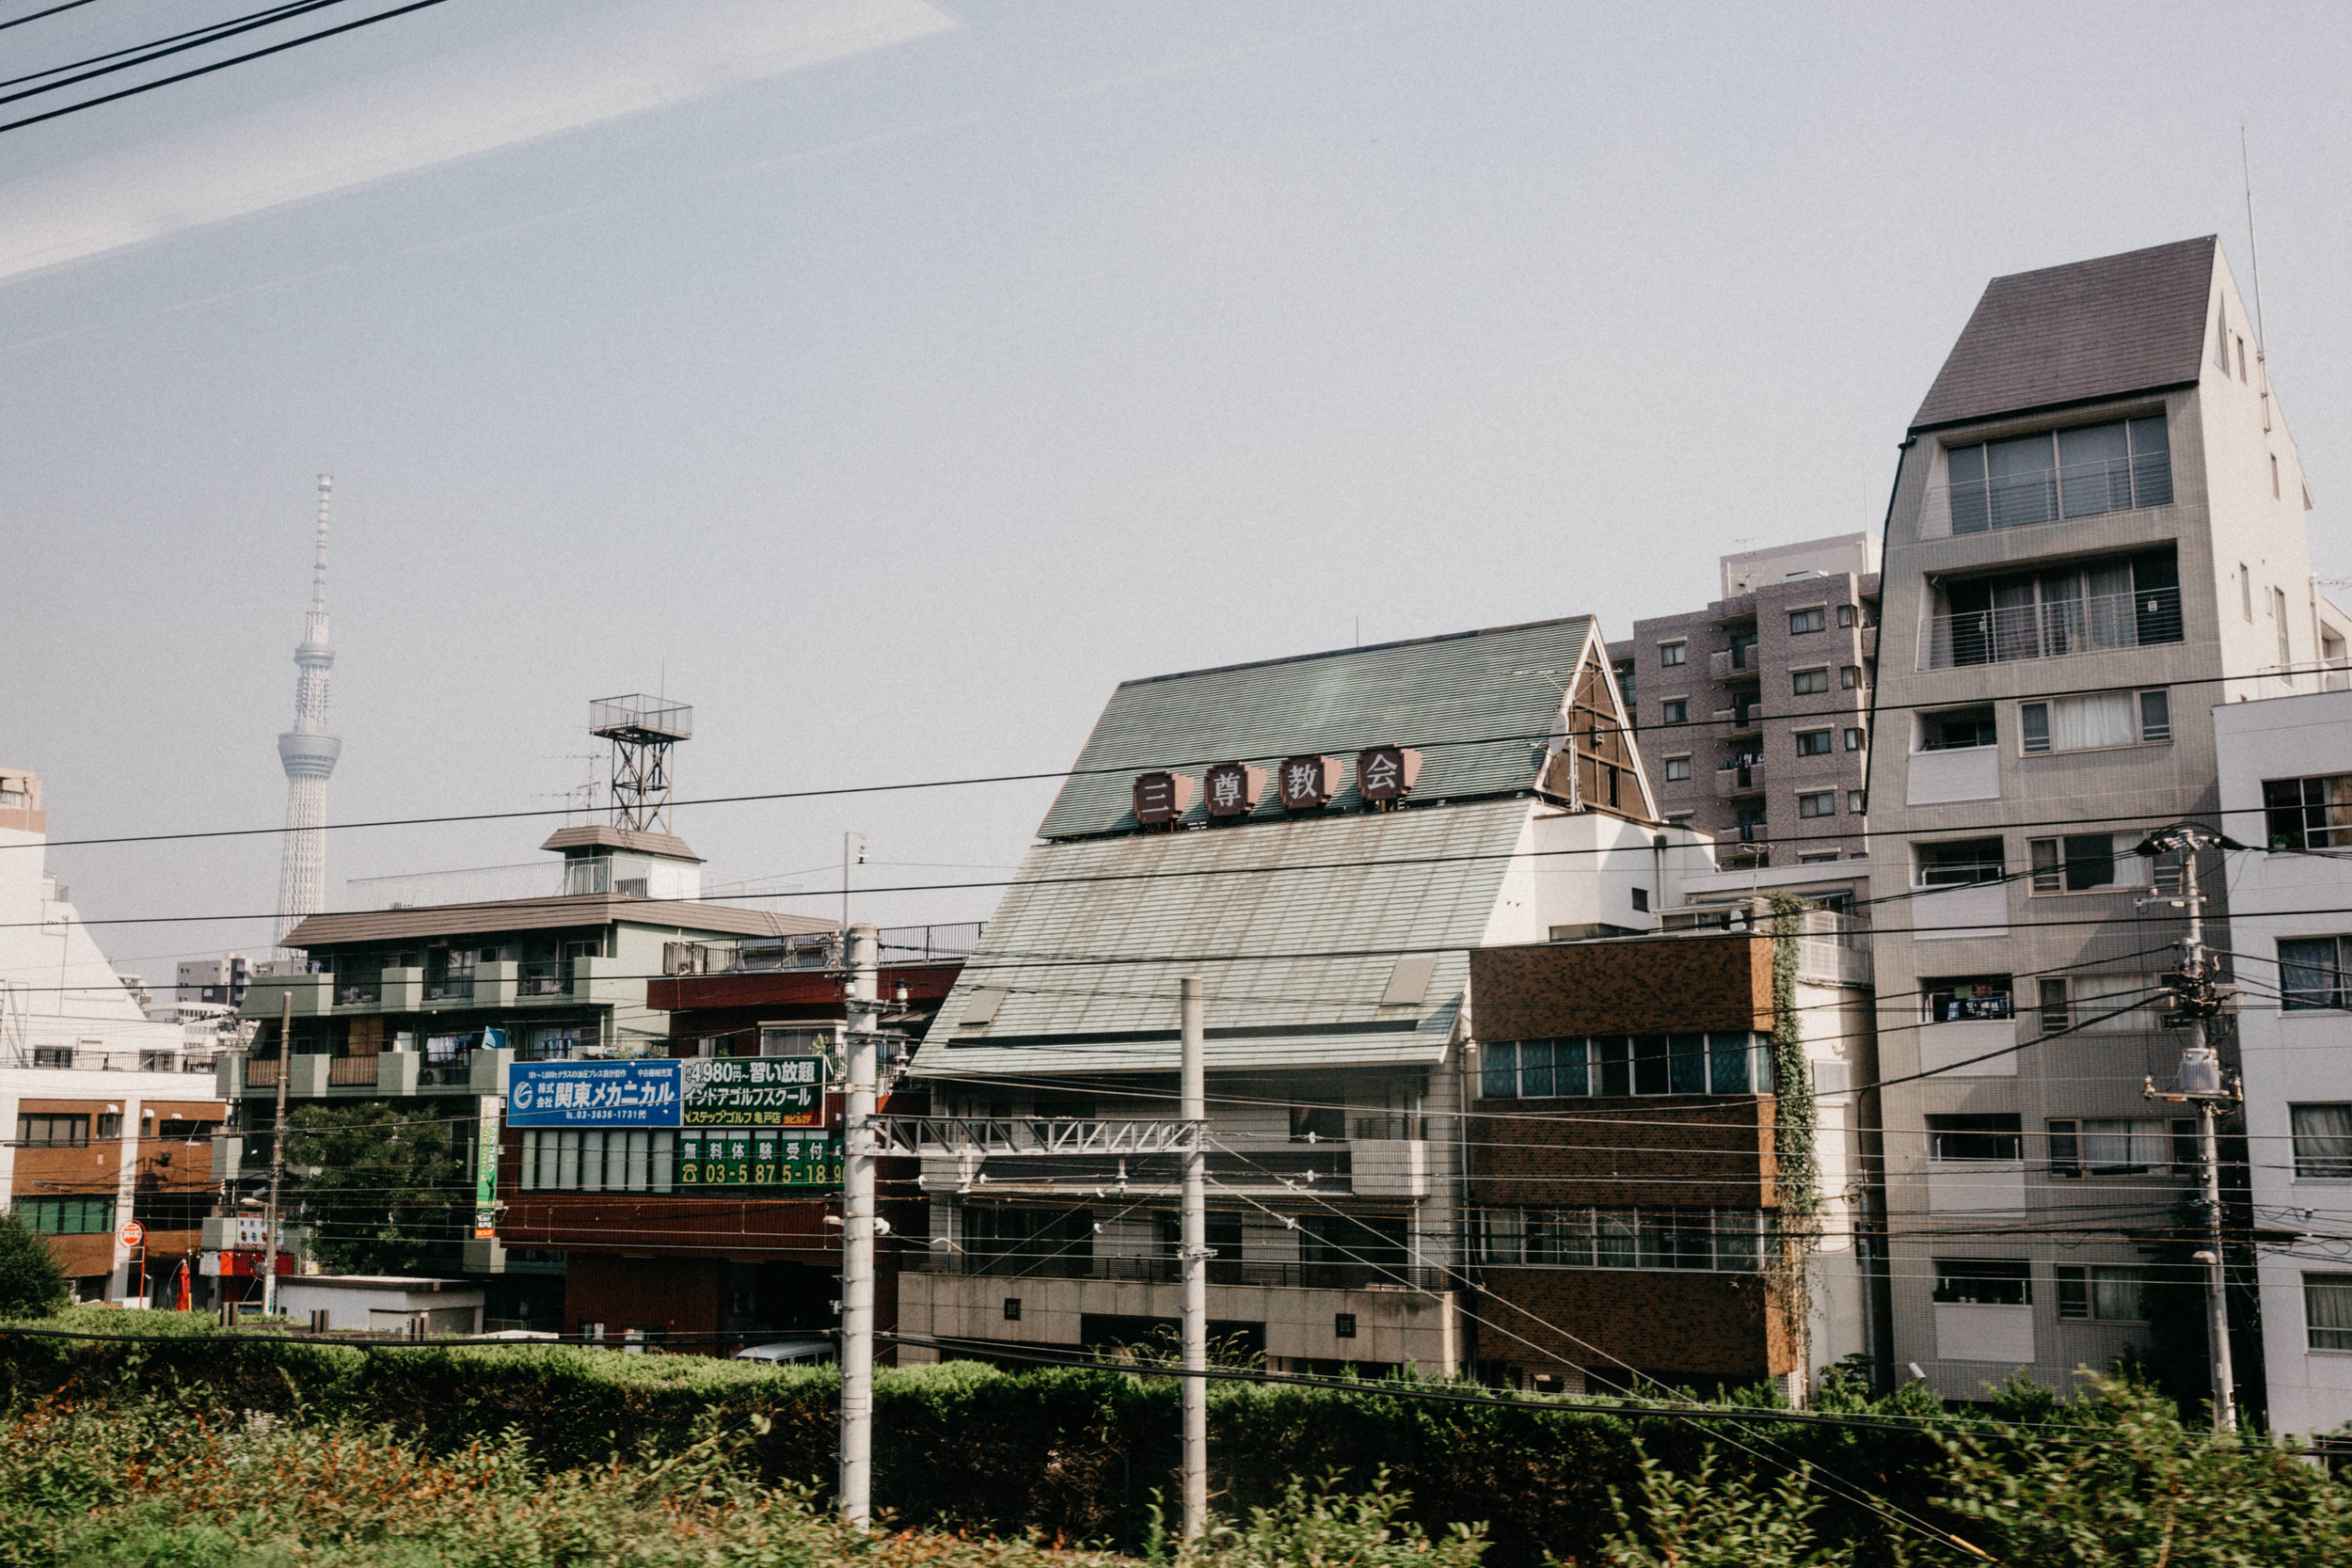 Traditional tokyo architecture and new highrise japanese buildings